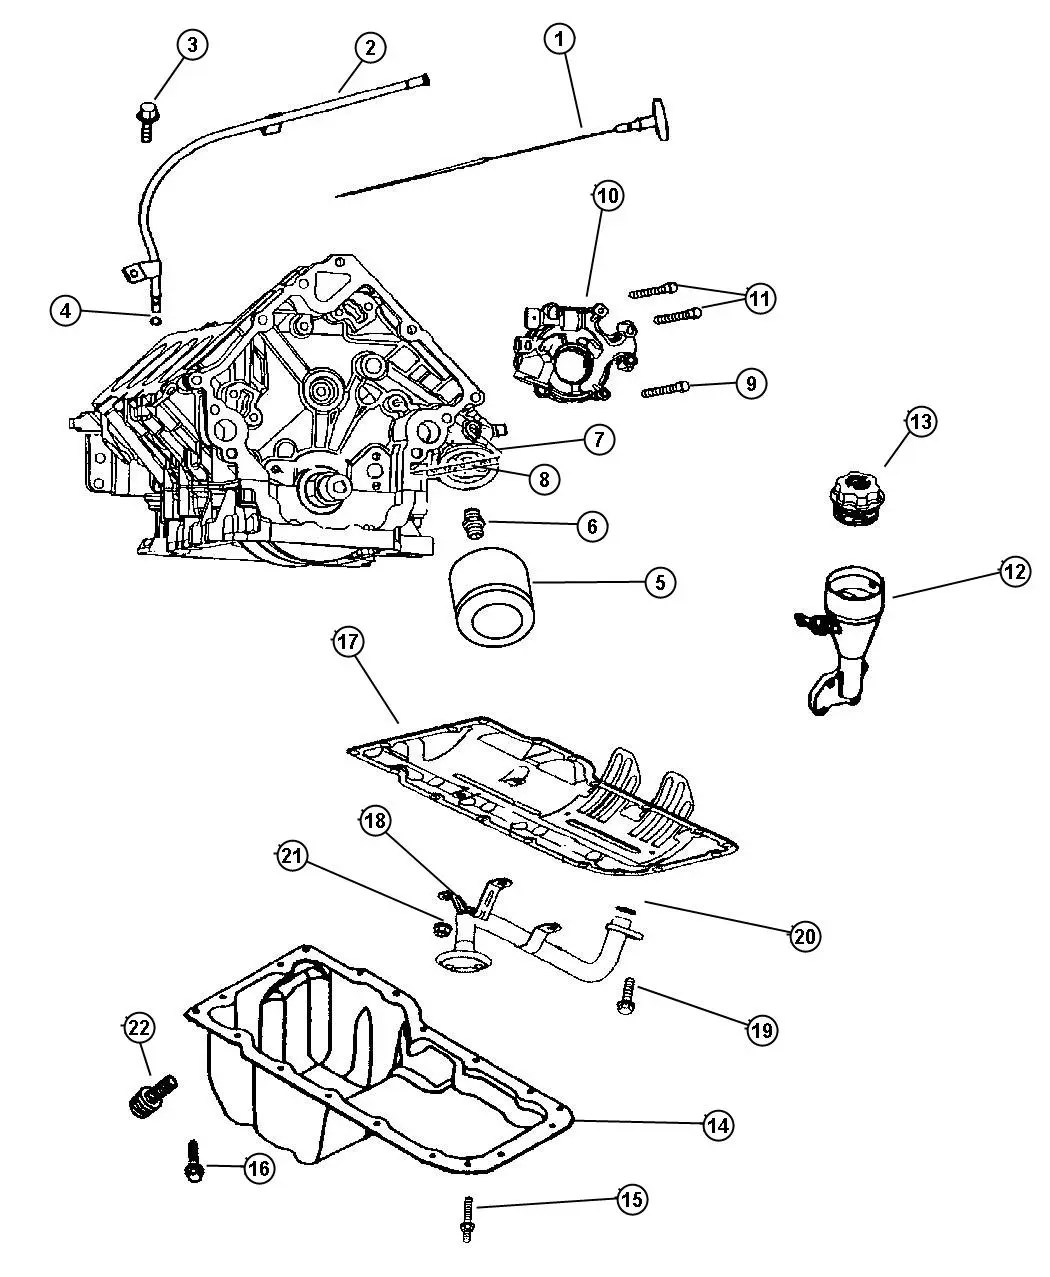 hight resolution of 2004 dodge 5 7 hemi serpentine belt diagram schematics wiring 2009 dodge ram 2500 serpentine belt